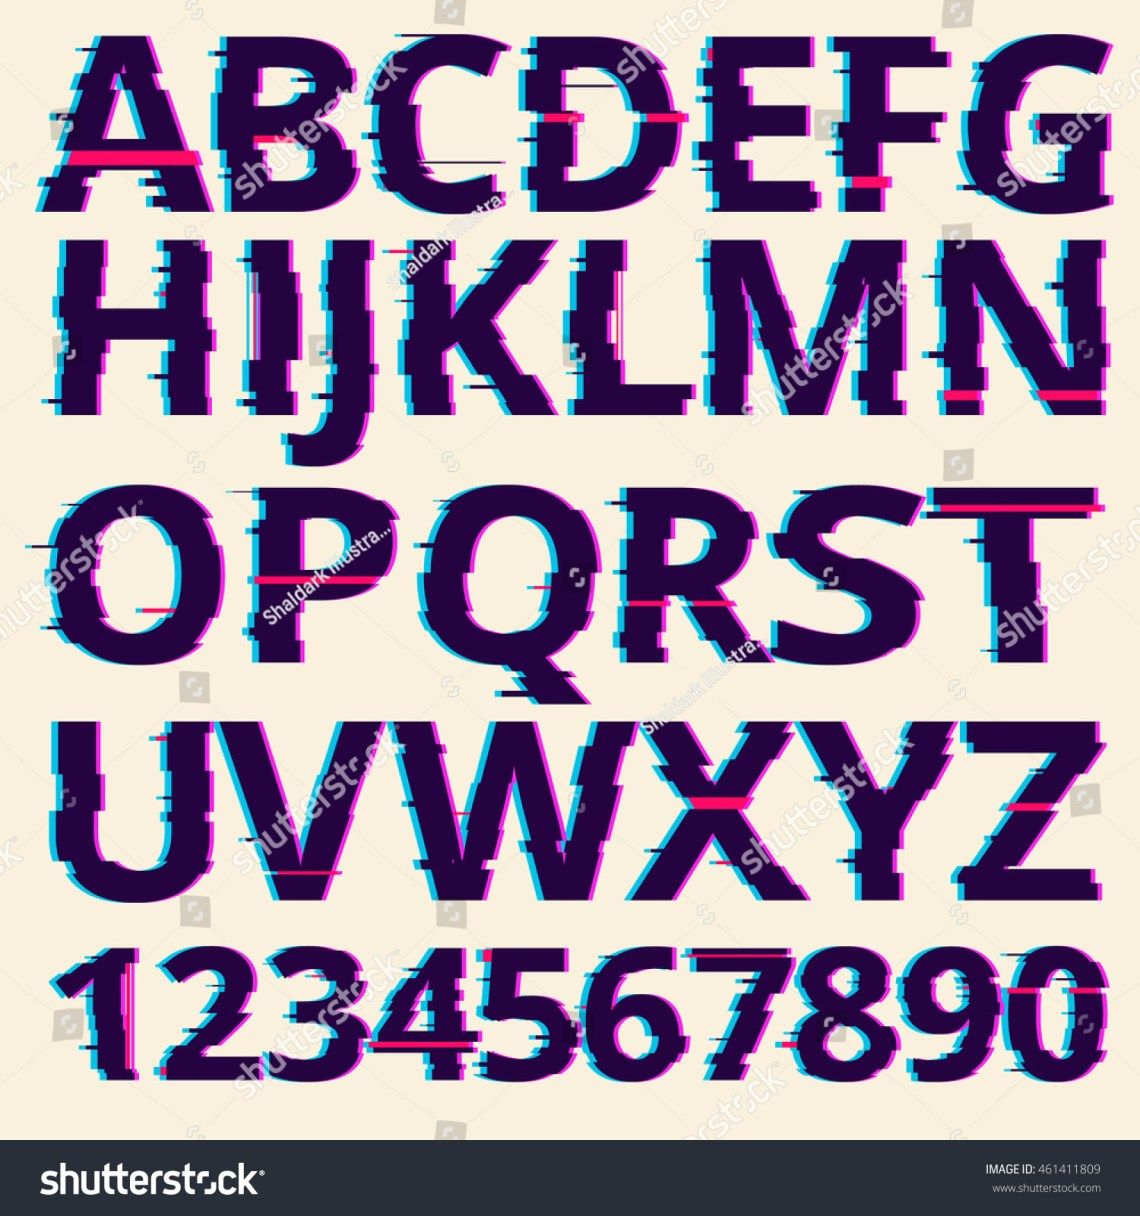 Download Vector Glitch Fonts Pack. Glitch Font Illustration ...